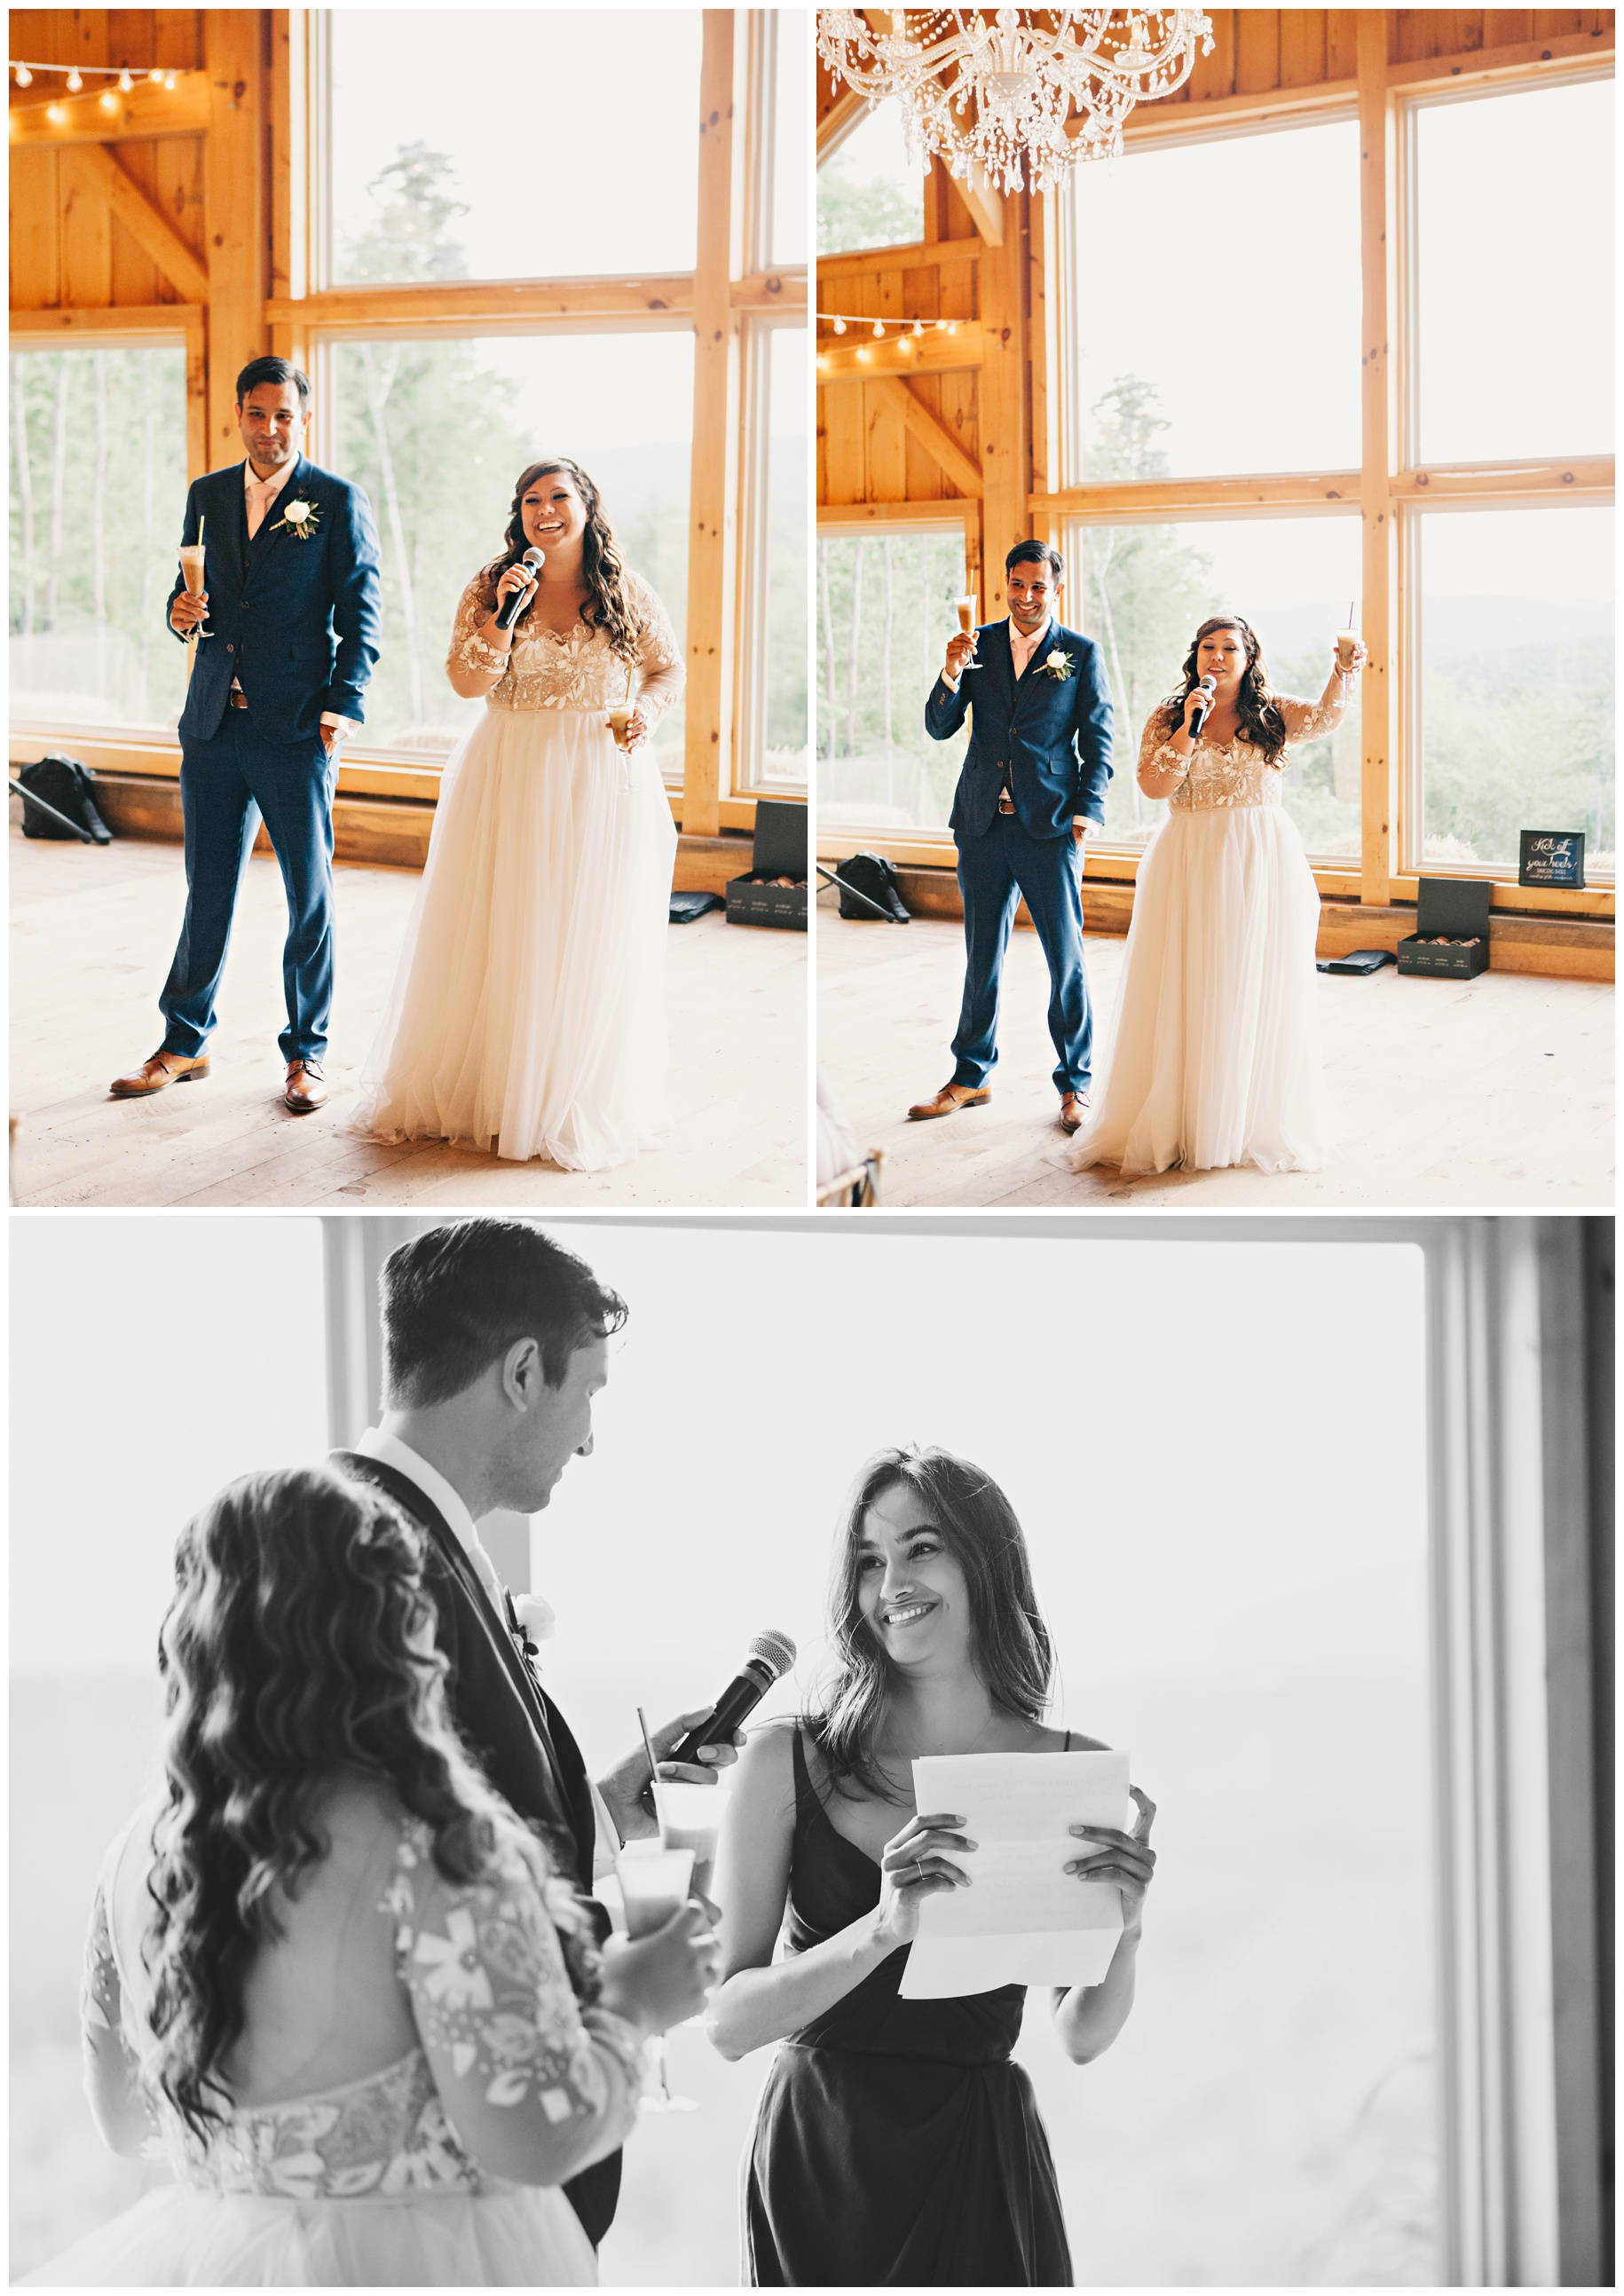 maineweddingphotographer_graniteridge_norway-098